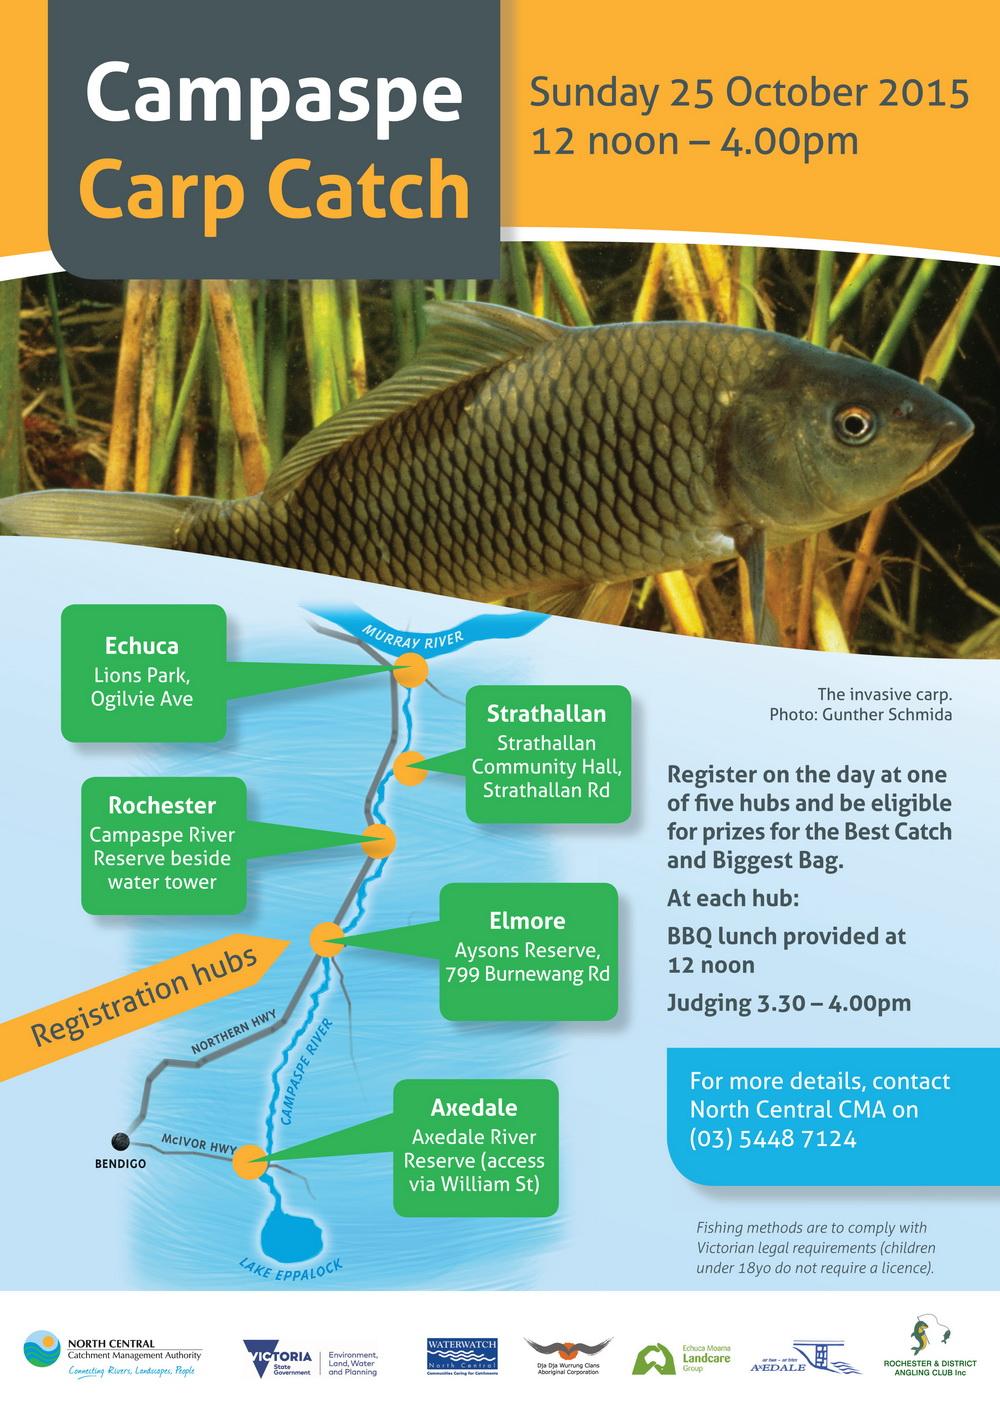 Catch a Carp Day Flyer 2015 (1)_resize